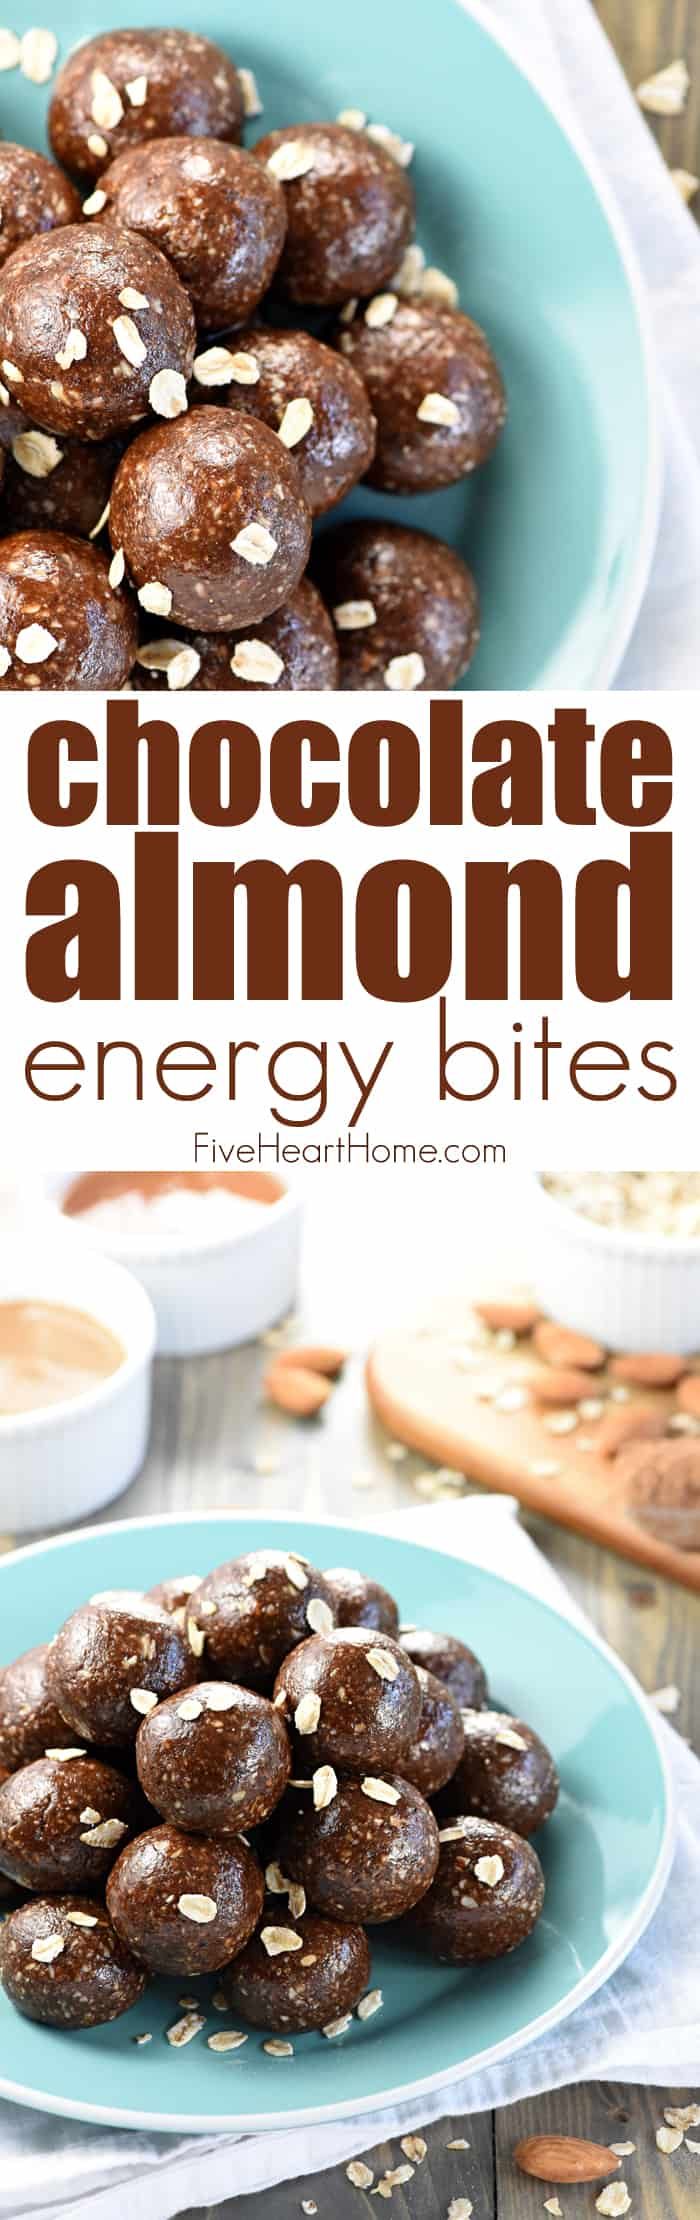 Chocolate Almond Energy Bites ~ ground almonds and oats are combined with almond butter, honey, cocoa powder, and chia seeds in these wholesome, protein-packed energy balls, perfect for a quick snack or breakfast on-the-go! | FiveHeartHome.com via @fivehearthome